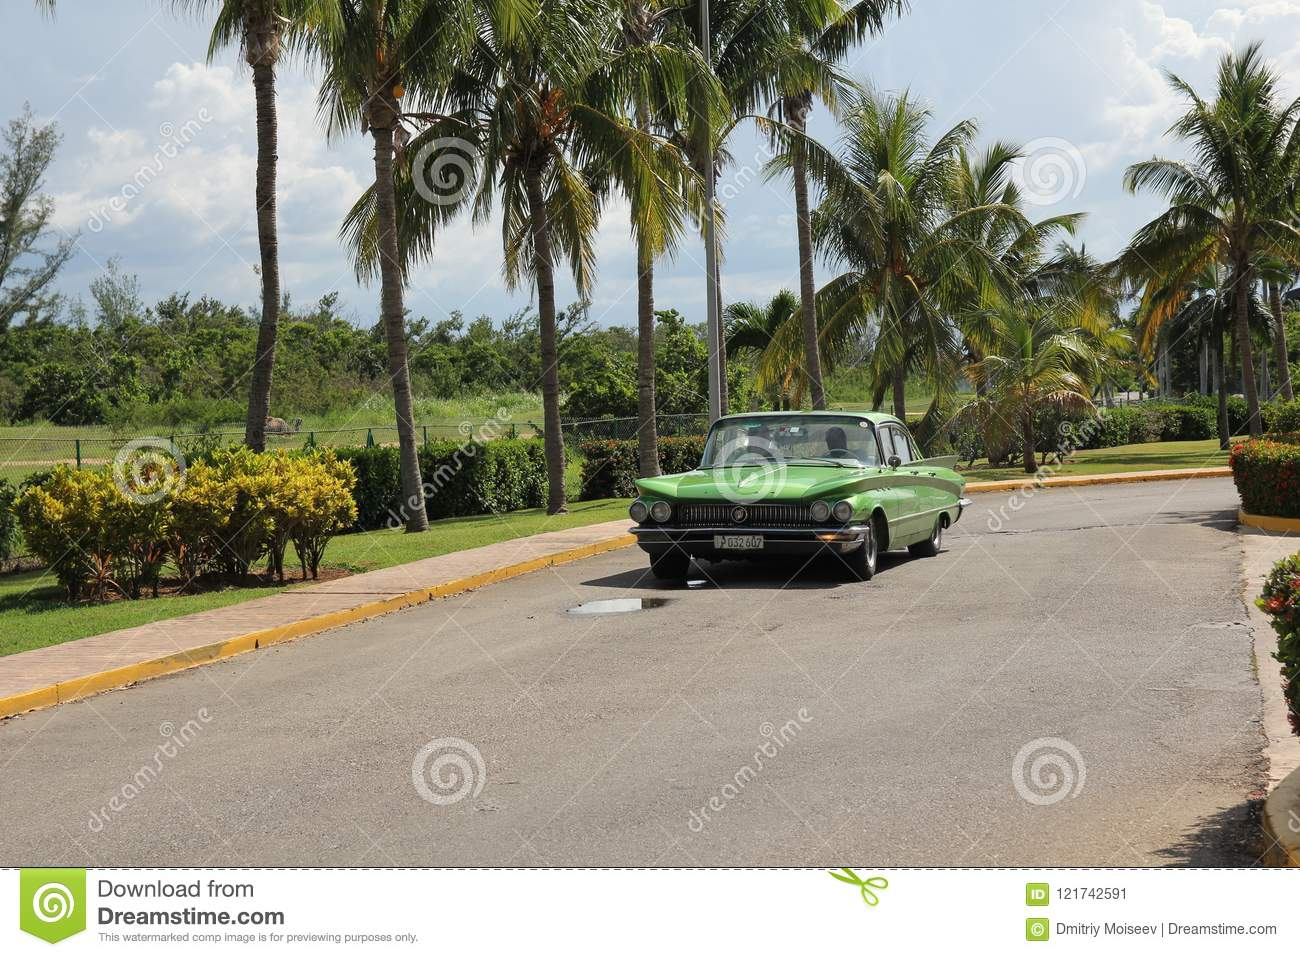 Green vintage American car rides along a row of tall palm trees